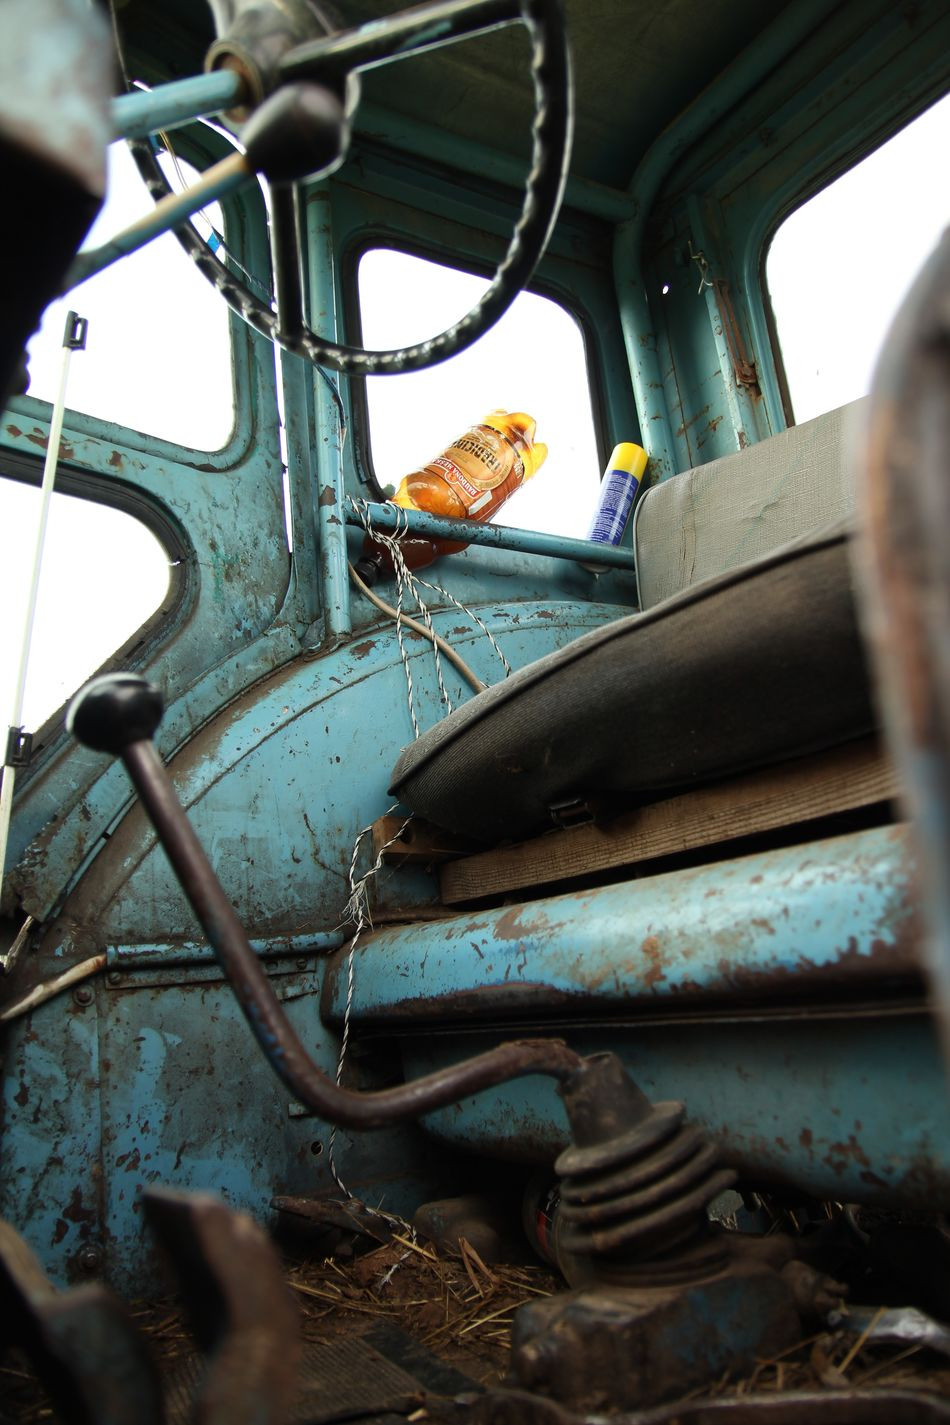 Belarus Tractor Blue Blue Tractor Dirty Dirty Cabin Land Vehicle Machinery Old Tractor Old Tractors Old Wheel Wheel